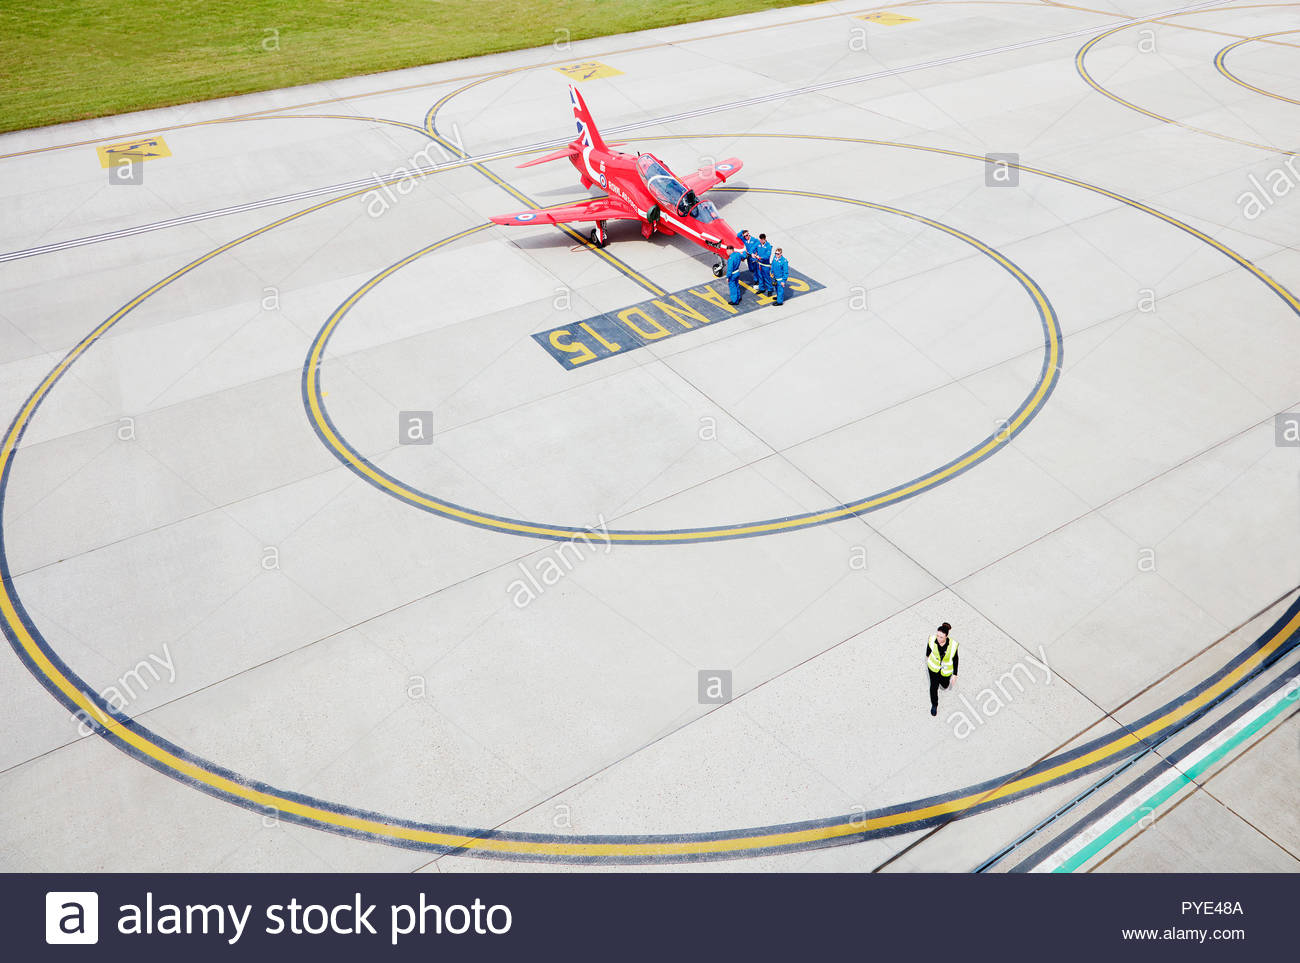 High angle view of Red Arrows airplane on runway on RAF Scrampton, UK - Stock Image